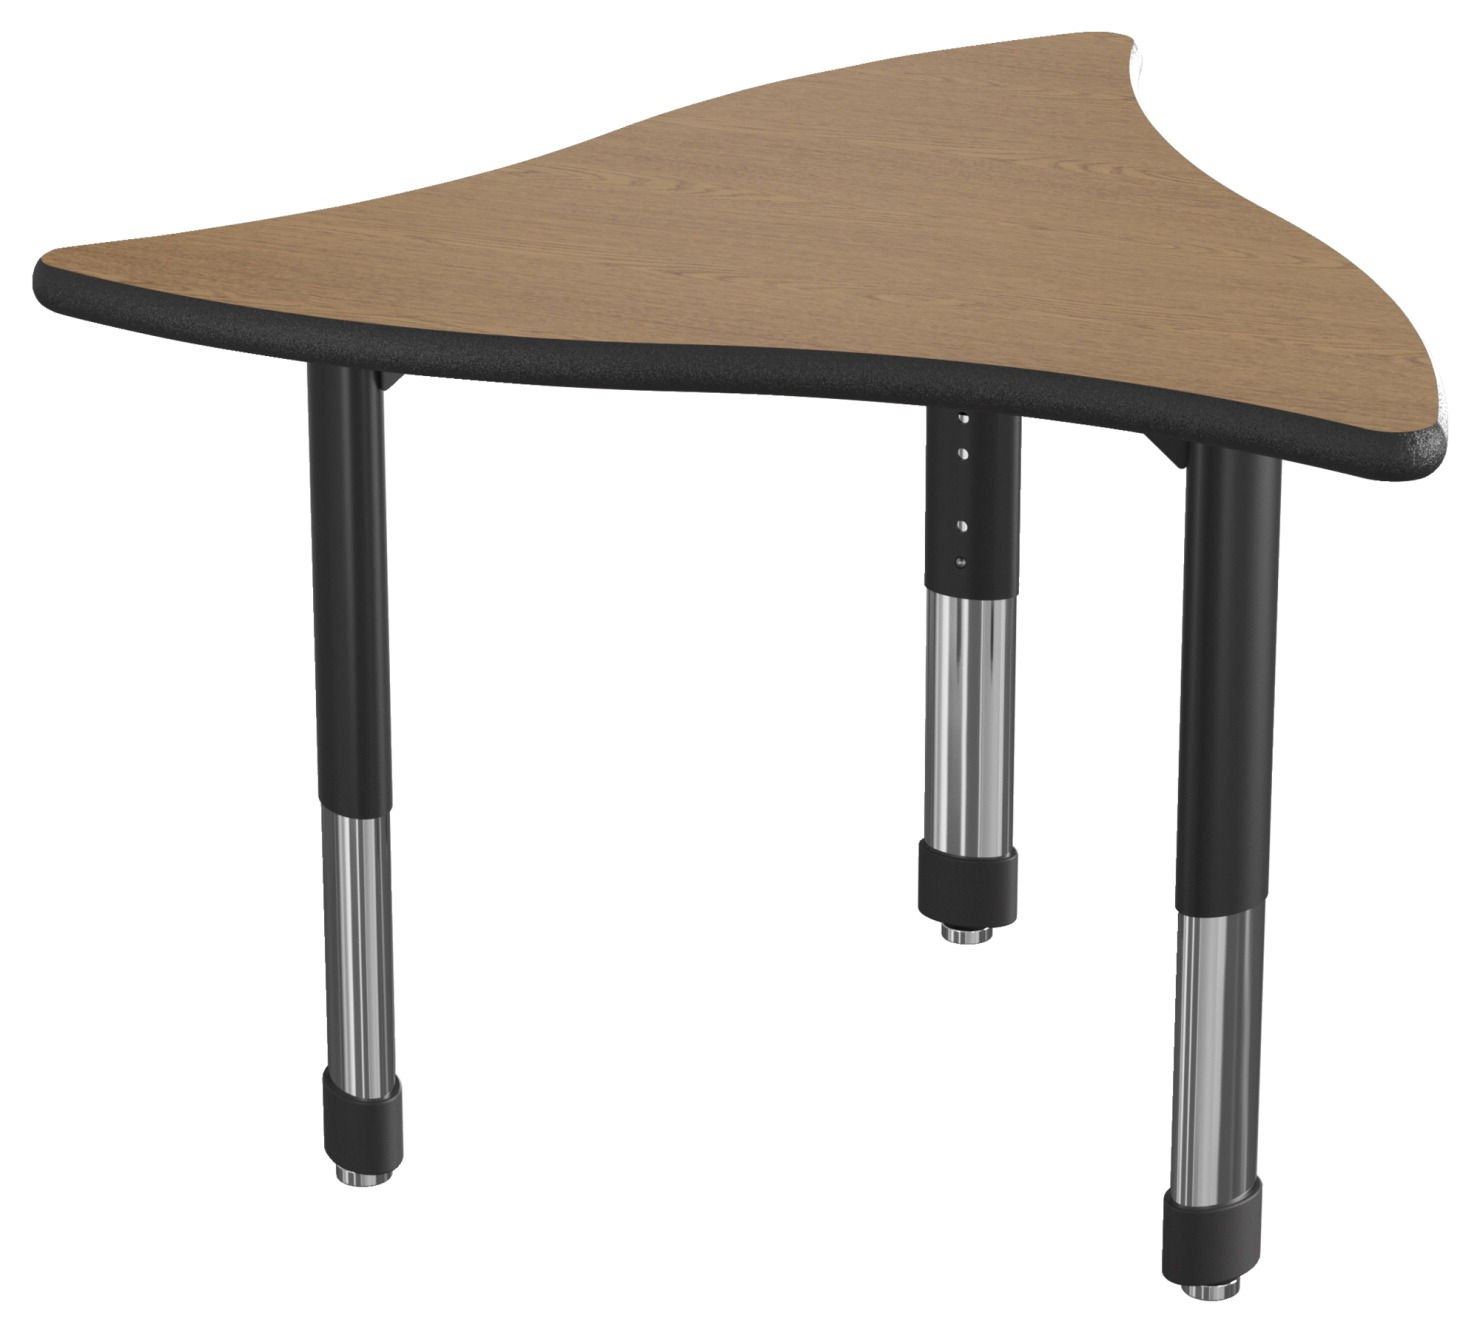 Classroom Select NeoShape Laminate Shaped Desk, LockEdge, Prop, 34 x 31 Inches, Various Options